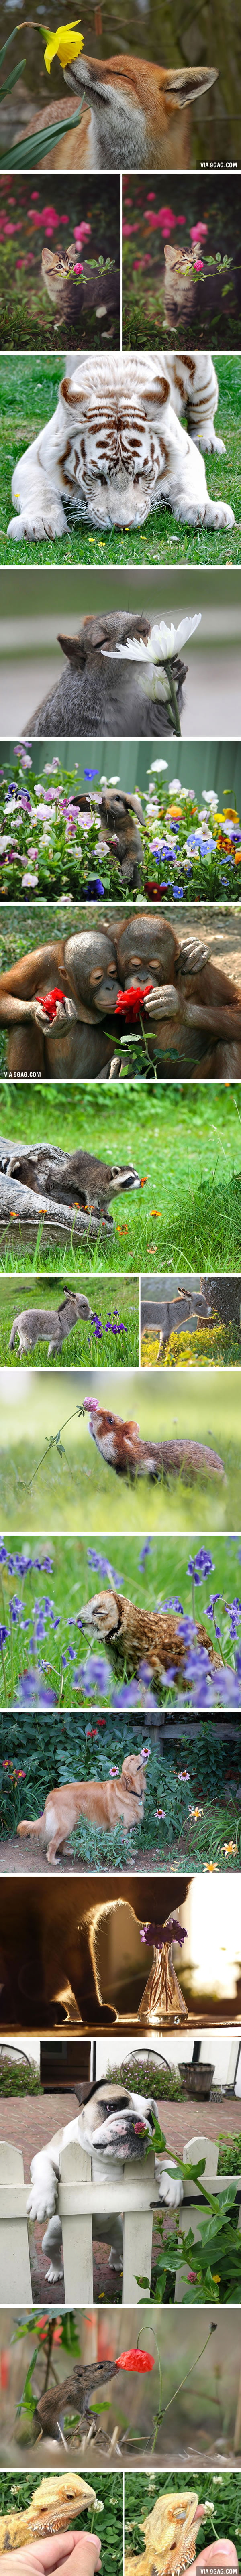 Animals Sniffing Flowers Is The Cutest Thing Ever